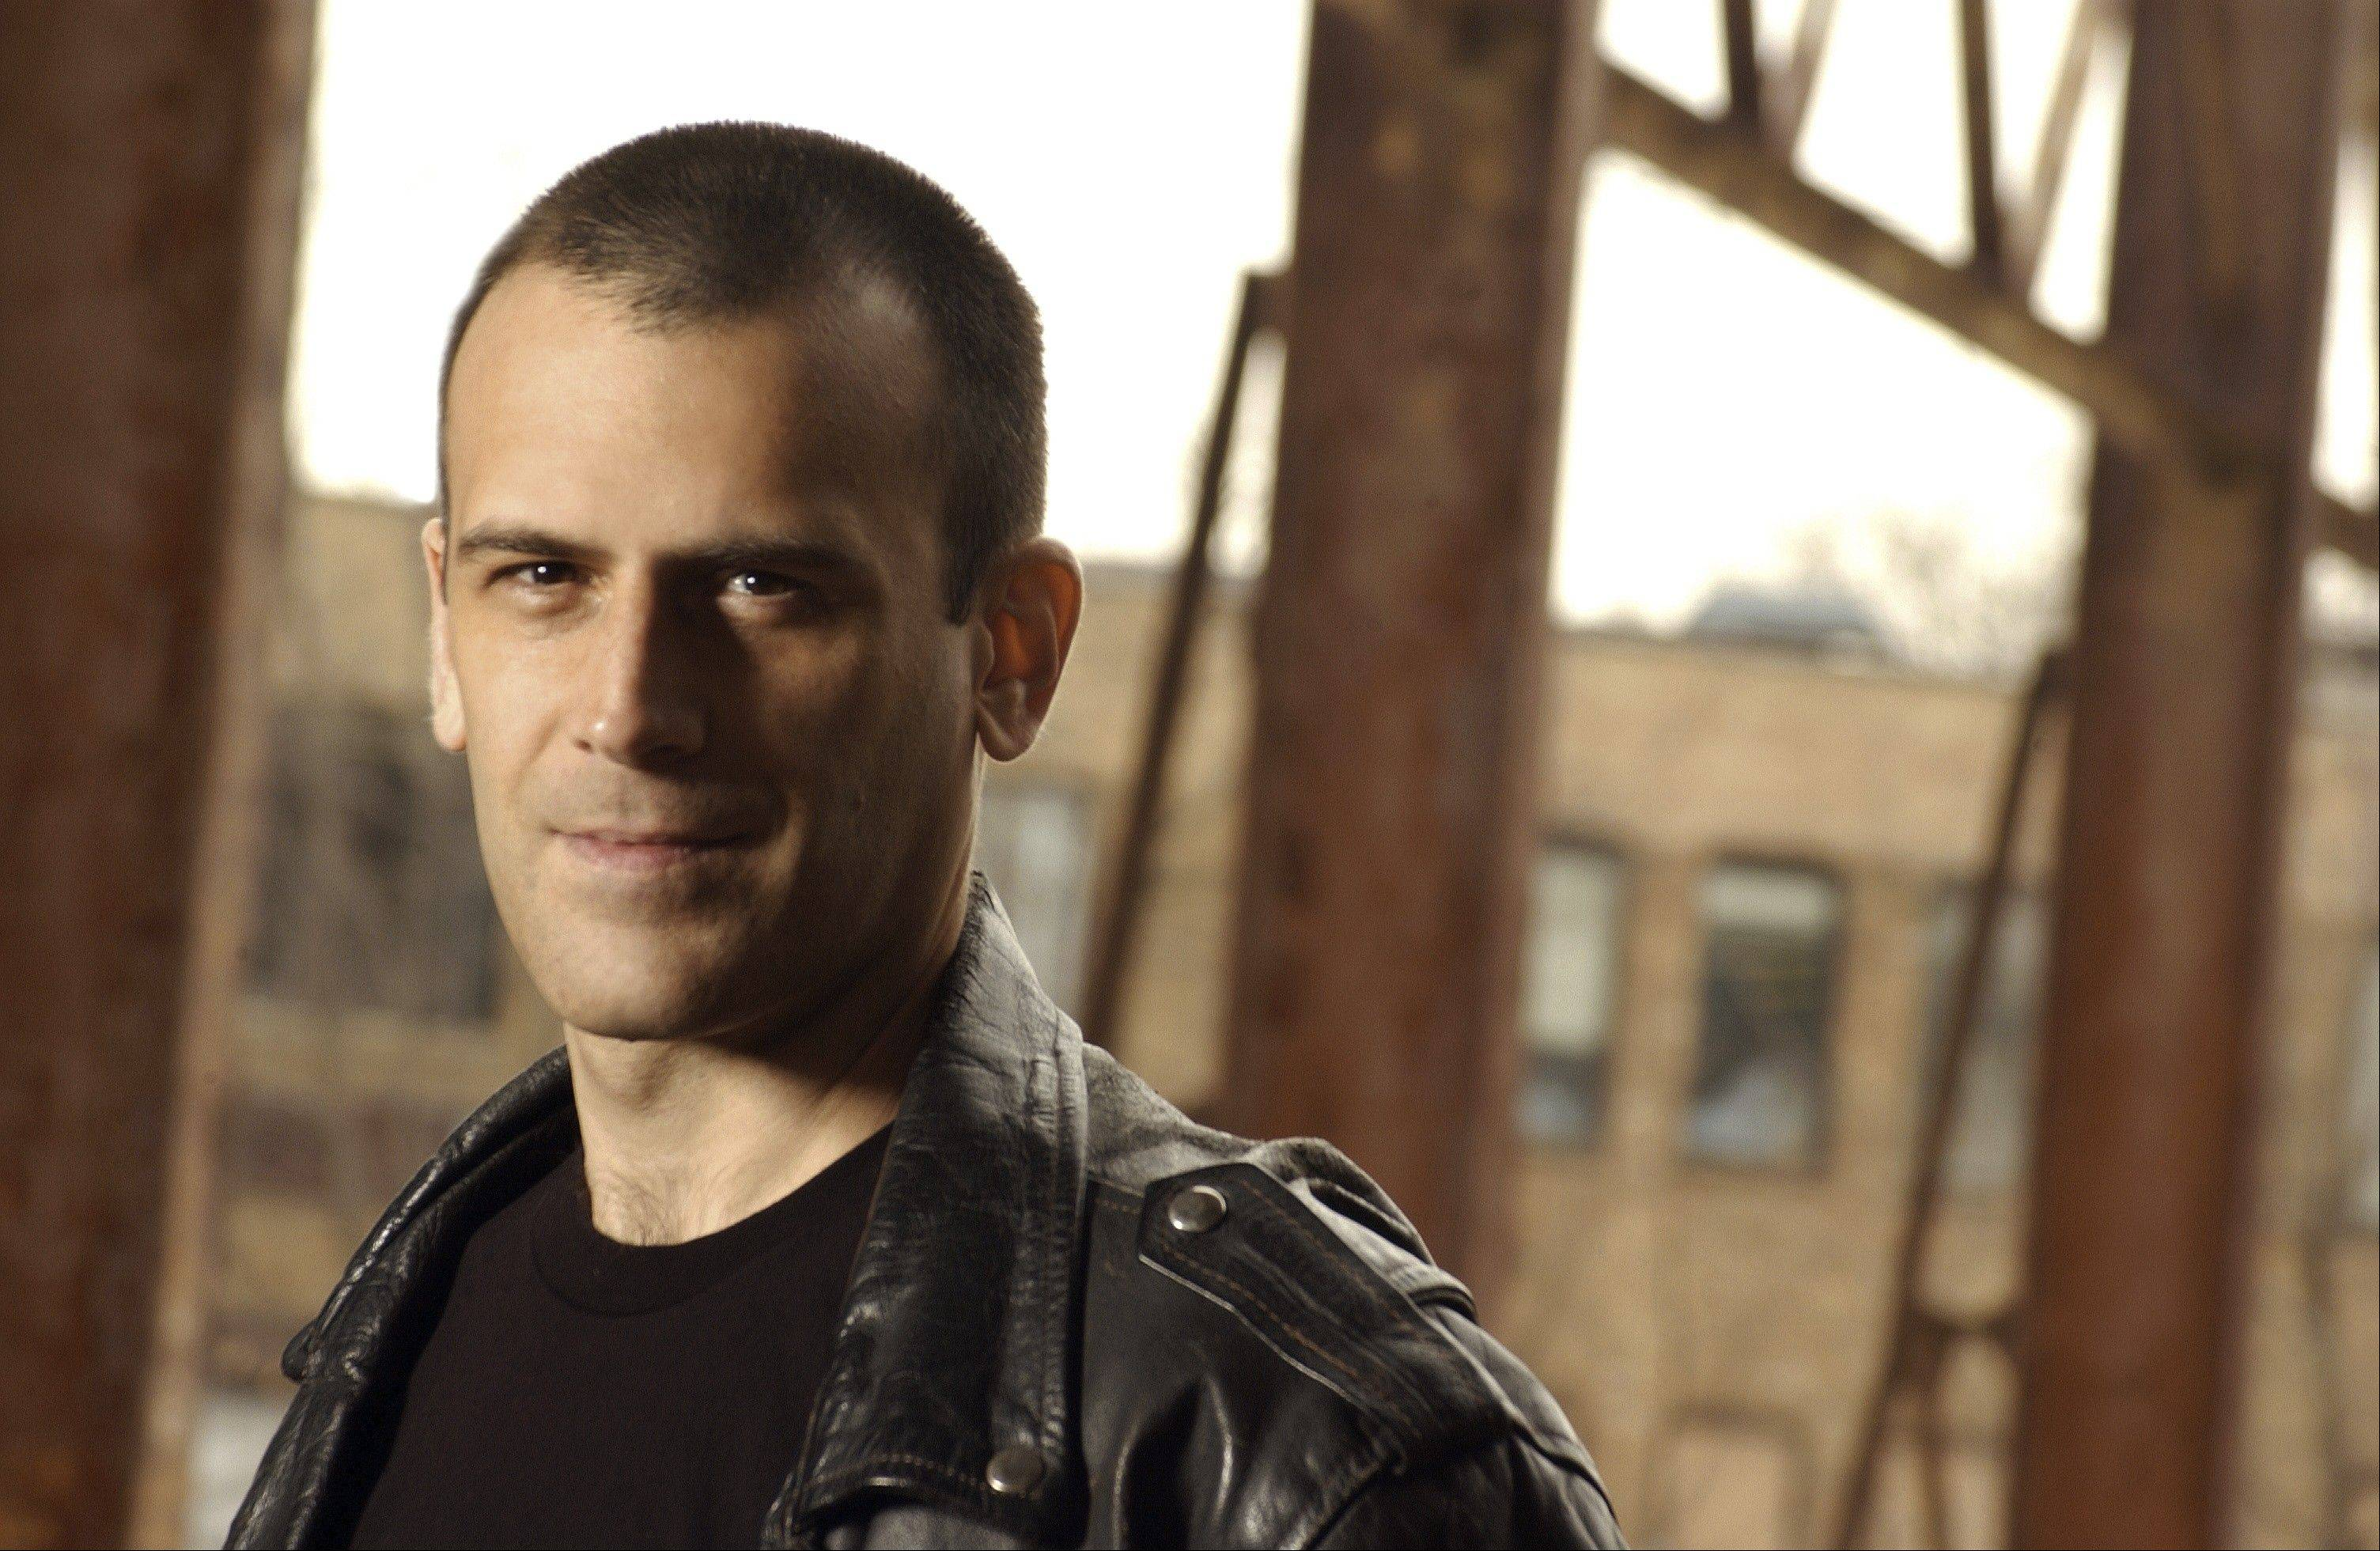 Prospect Heights' Ben Weasel and Screenching Weasel will perform at this year's Riot Fest.